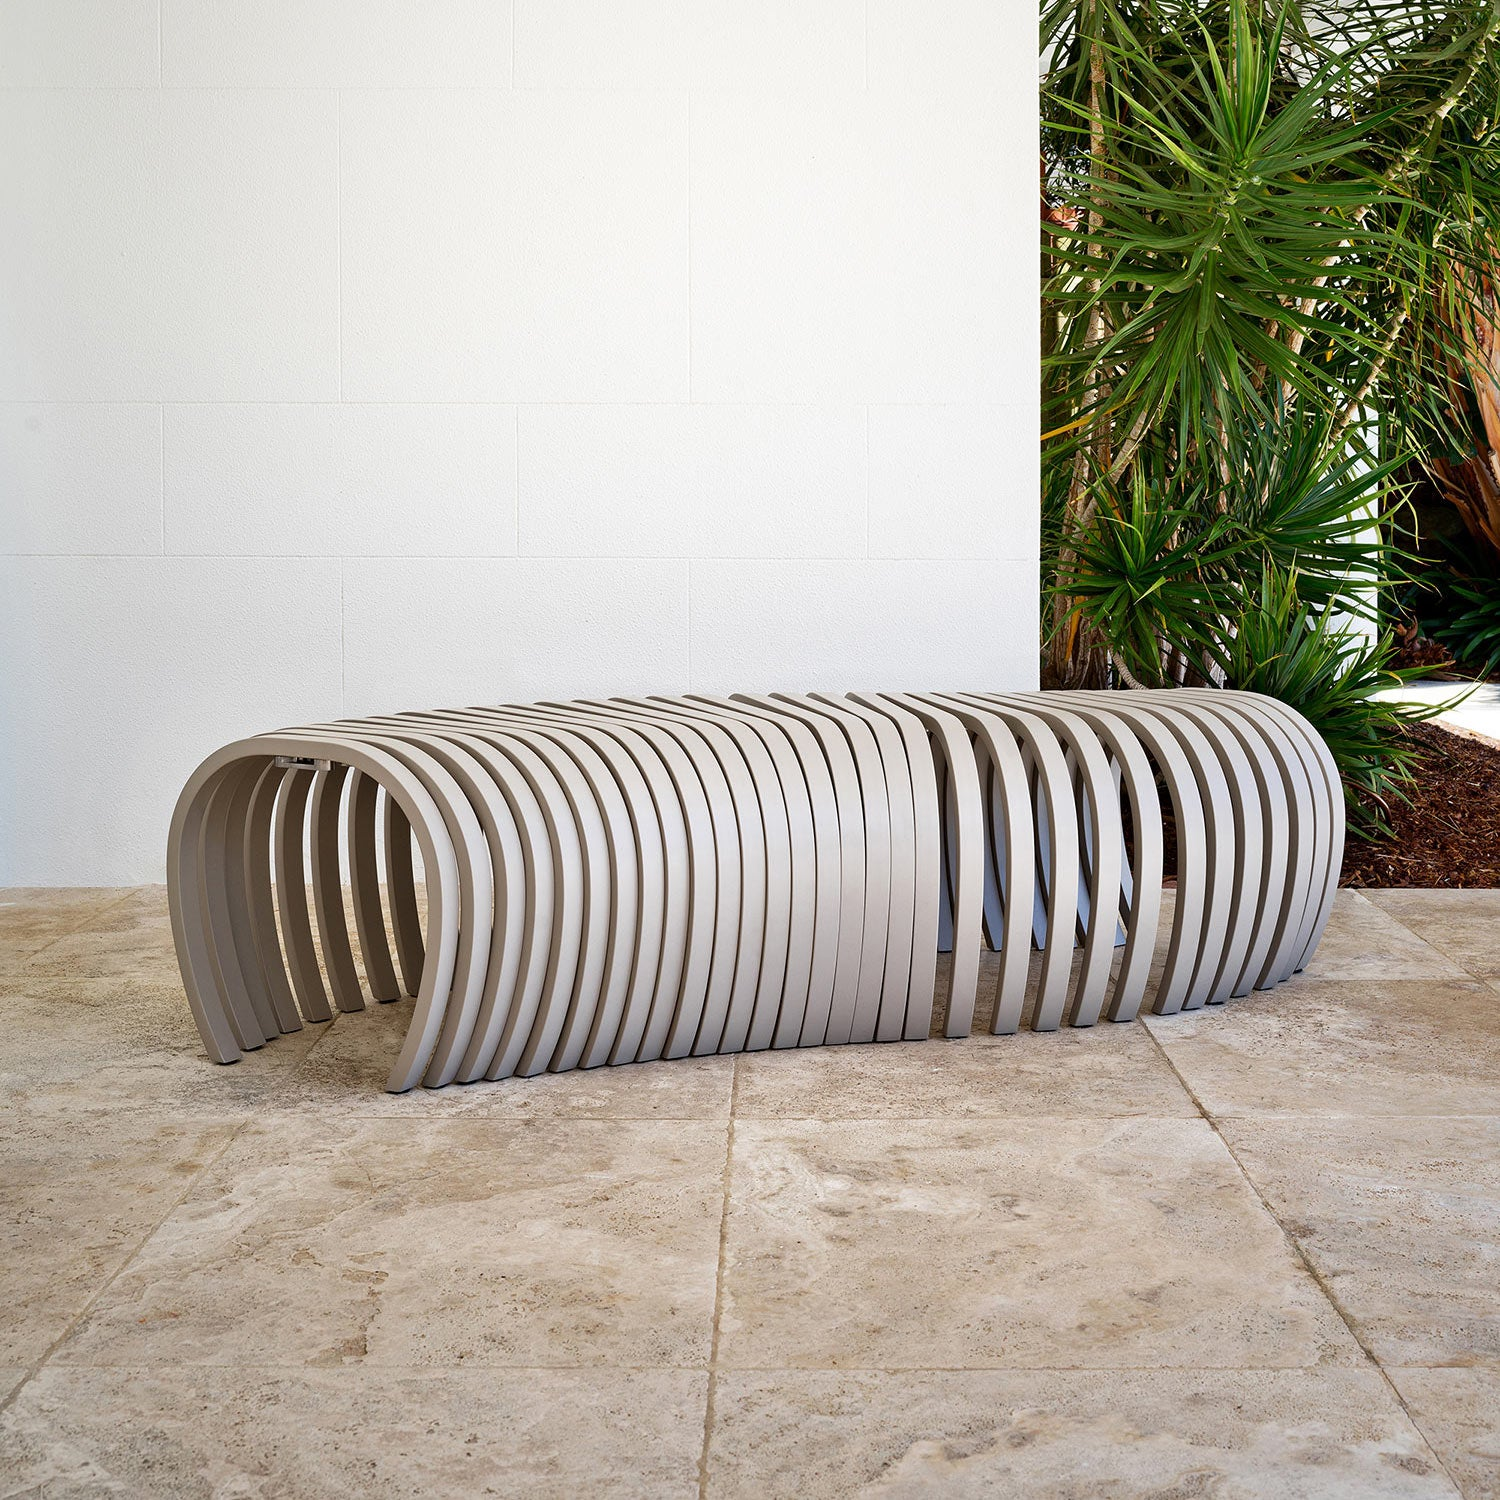 Ribs Bench Outdoor | Aluminium Metal Outdoor Furniture | Stefan Lie | DesignByThem